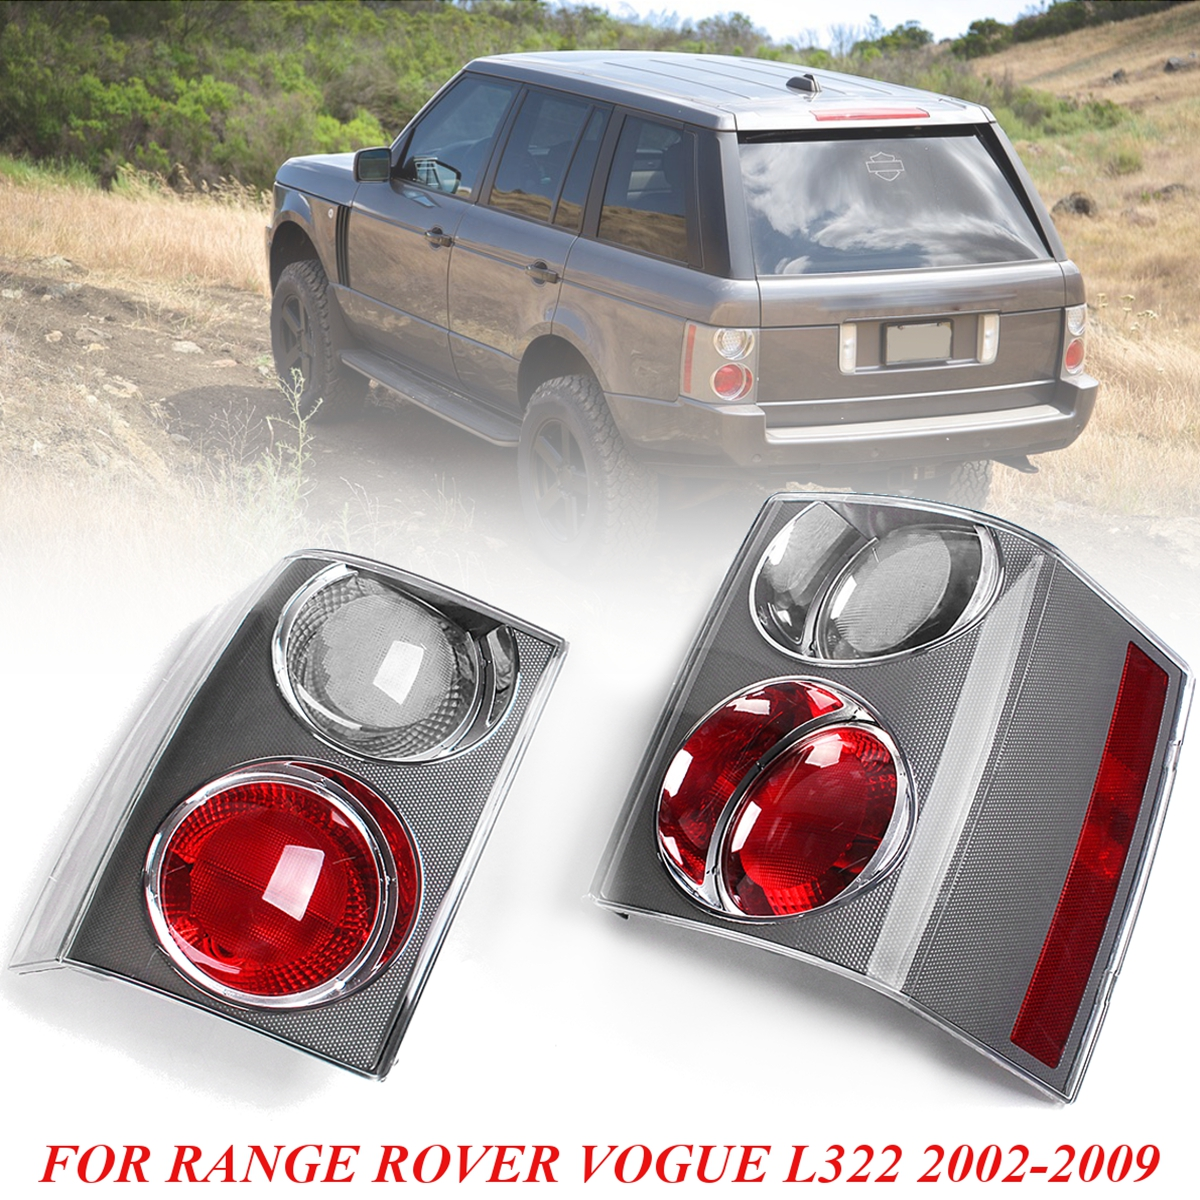 for Land Rover Tail Light 1 Pair Tail Brake Stop Light Rear Tail Lights Bumper Reflector For RANGE ROVER VOGUE L322 2002-2009 2 pcs pair rear bumper lights without bulbs tail fog lamps for toyota land cruiser prado fj120 2002 2009